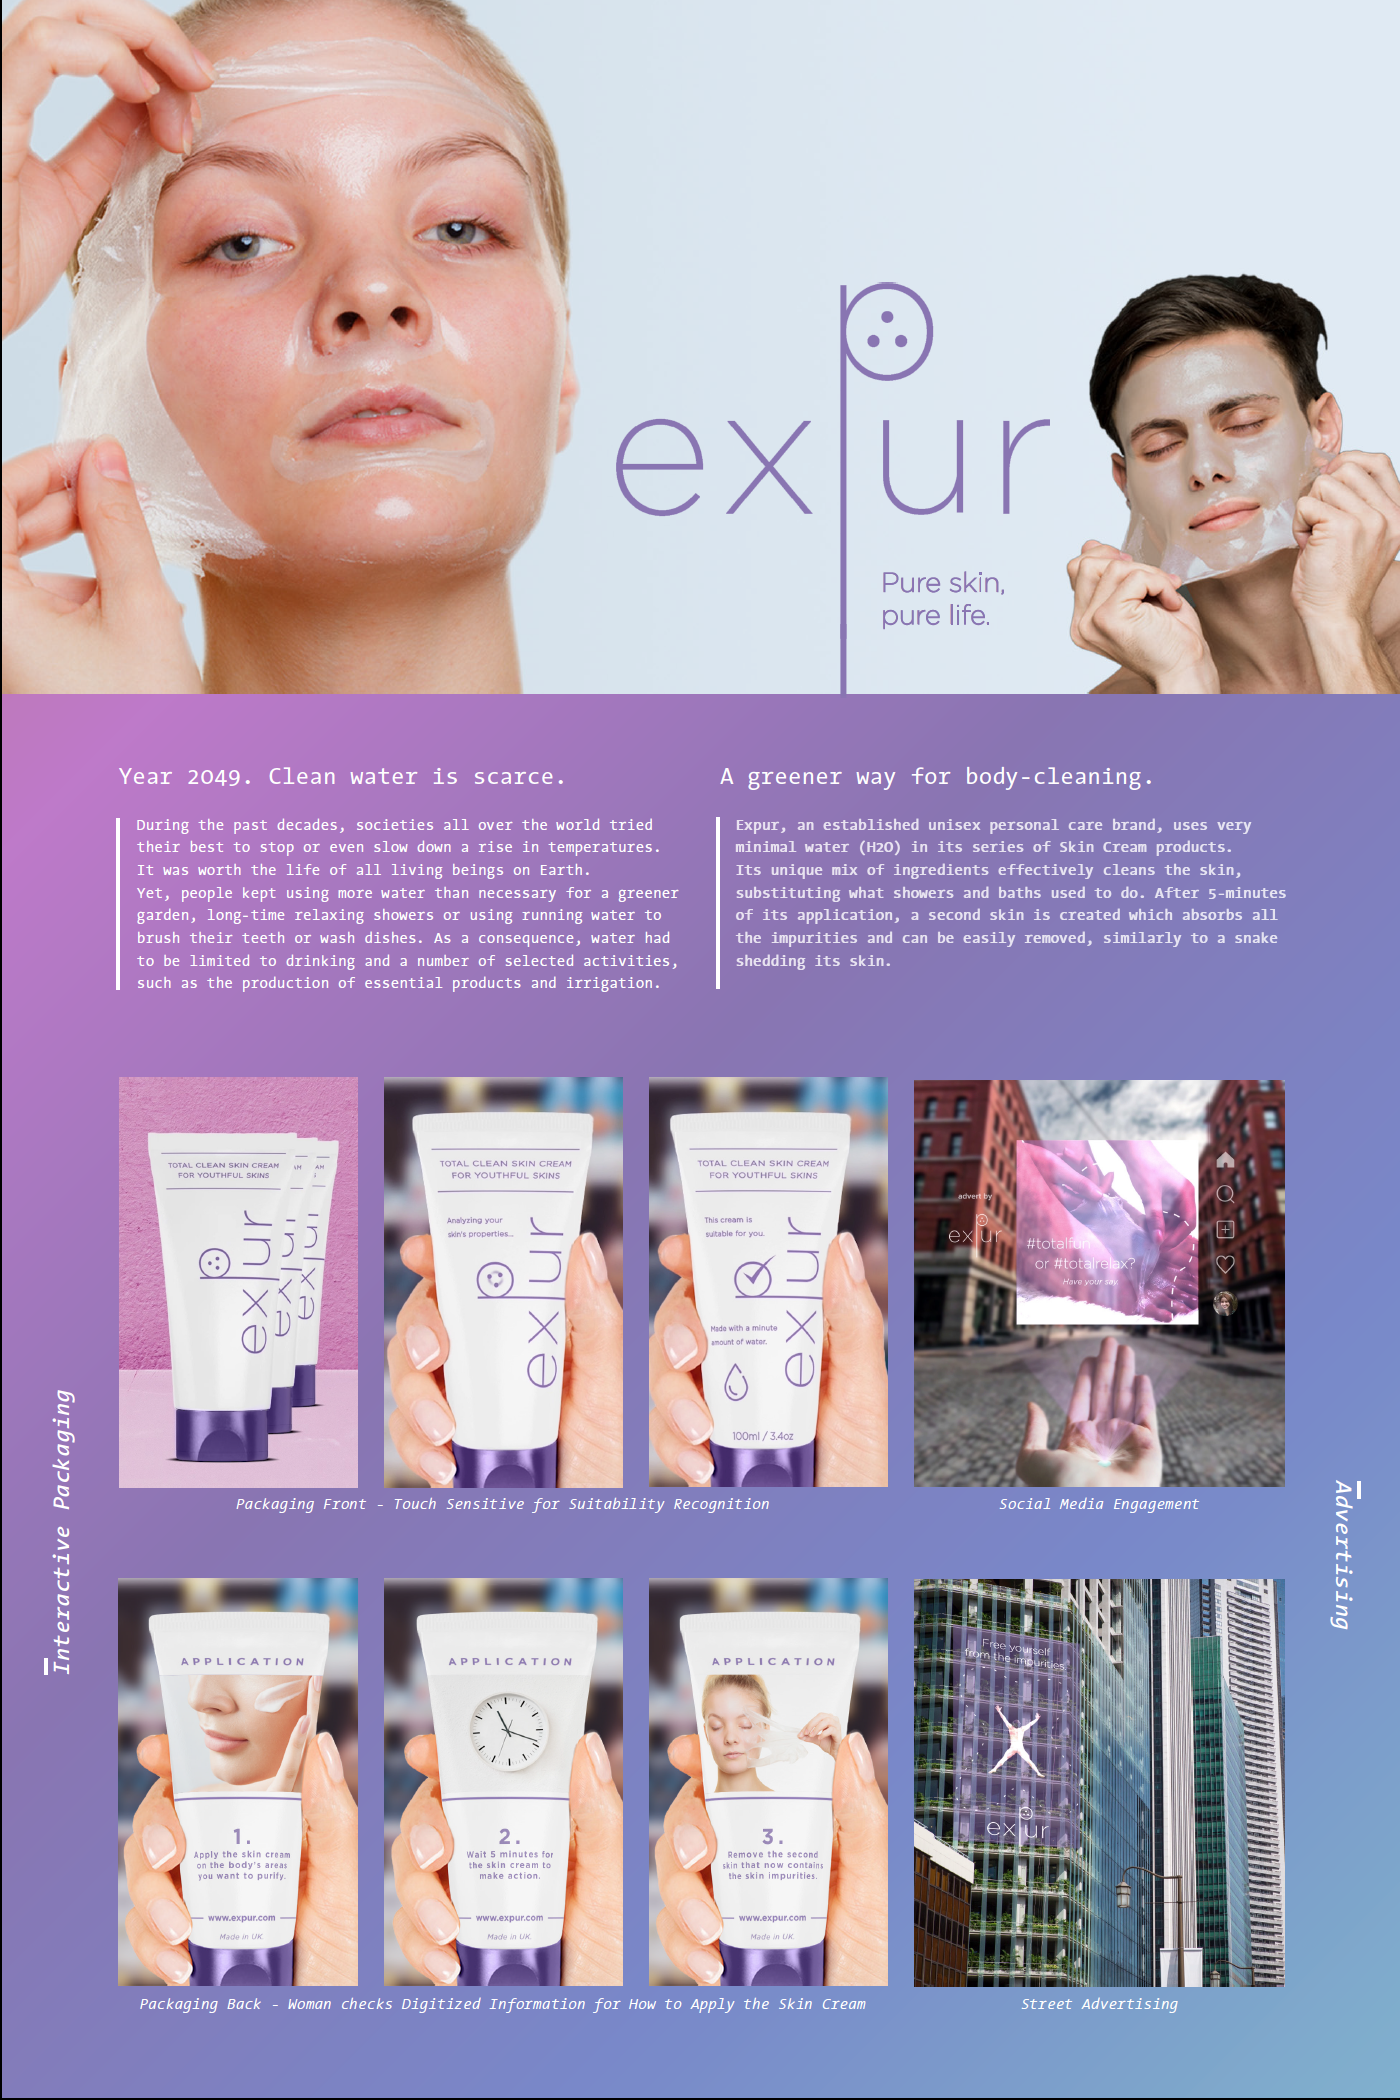 Expur - Total Clean Skin Cream   Giuseppe Lorrai  Expur is a speculative personal care brand which markets a product that cleans the skin without the need for baths or showers. In fact, it creates a second skin that absorbs all the impurities and can be easily removed, similarly to a snake shedding its skin. It tries to make people reflect on their usage of water imagining a future where clean water has been limited to drinking and a definite number of selected activities. It also imagines a future where skin care products take advantage of digital tools to recognize the properties of the skin and make information more accessible thanks to touch screen interactions.